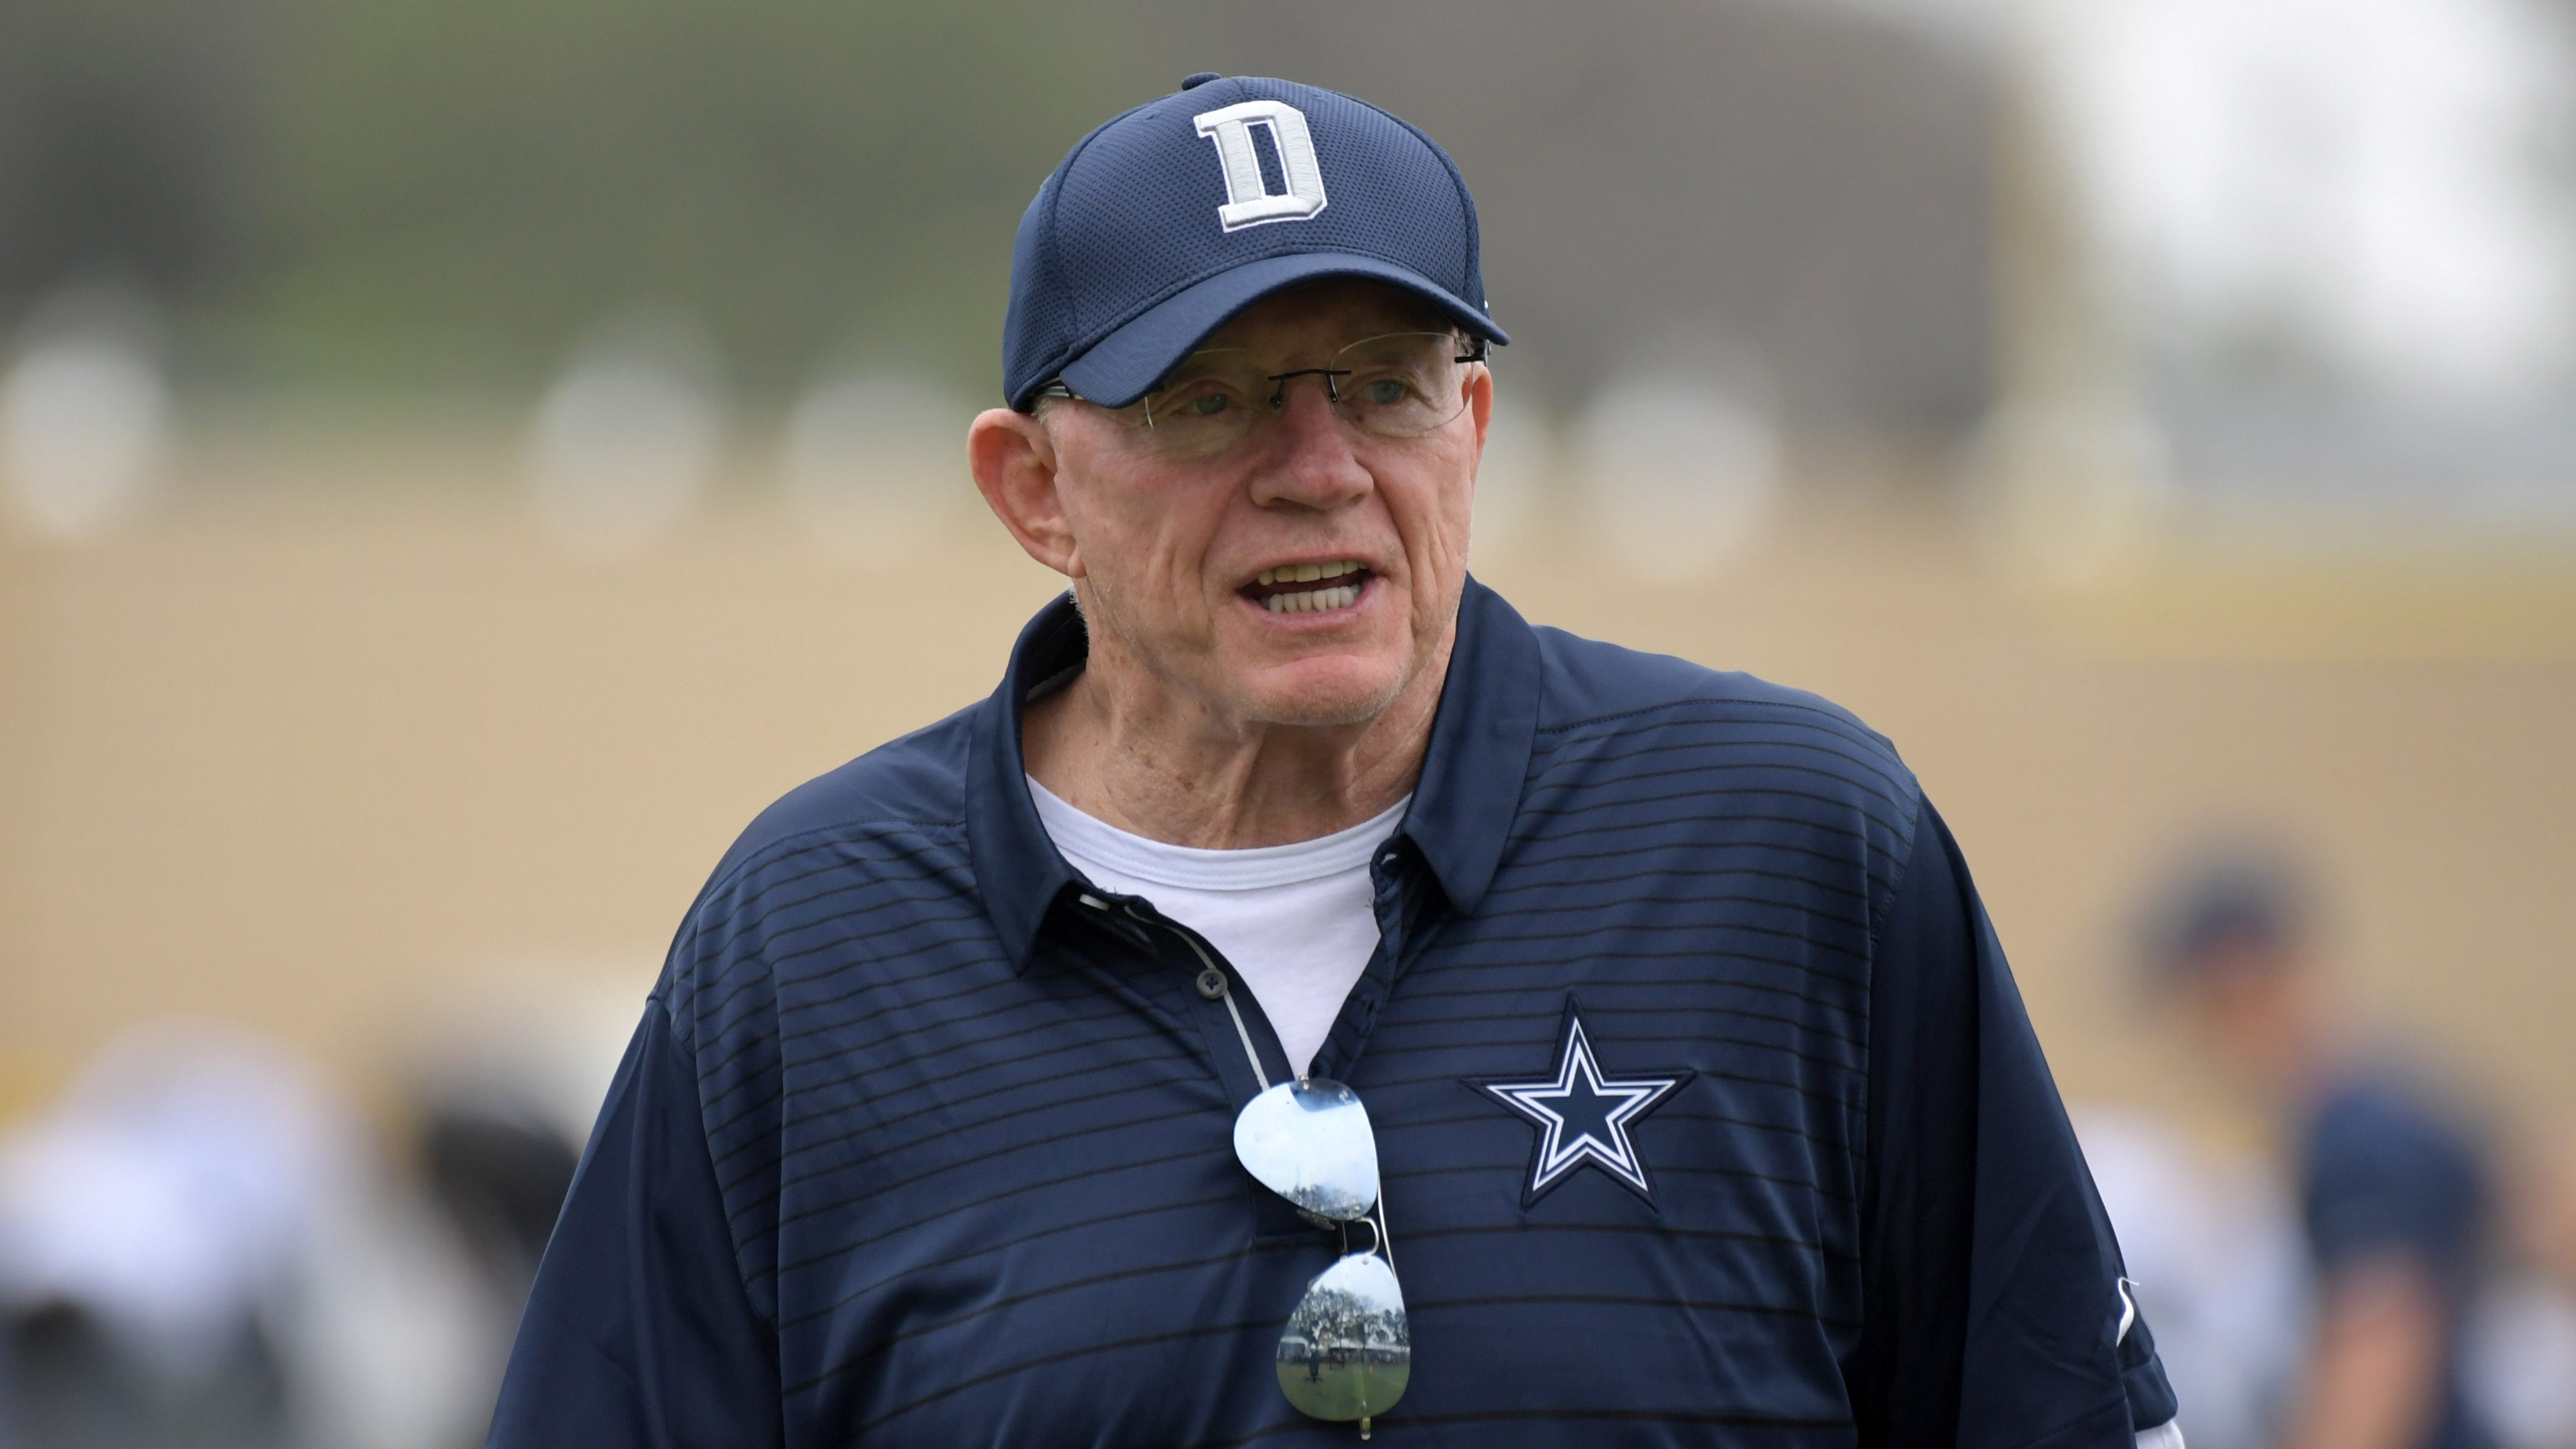 Dallas Cowboys owner Jerry Jones reacts during training camp.